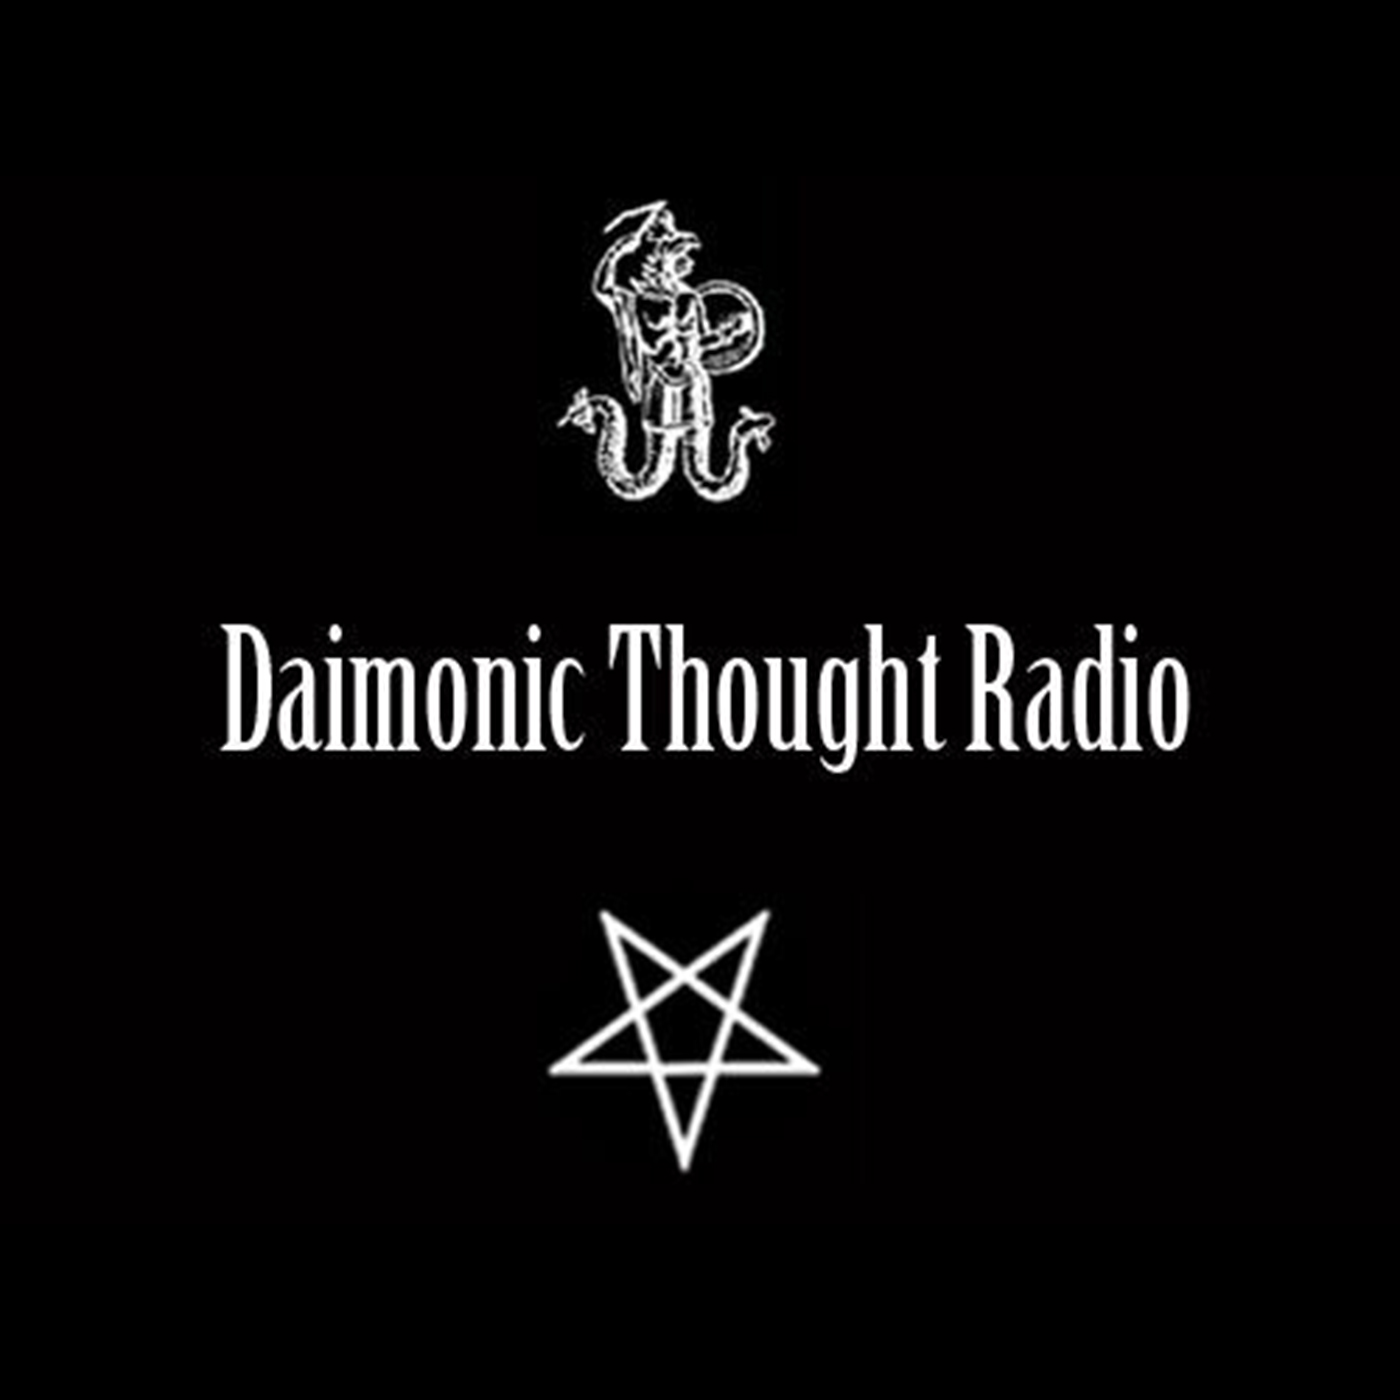 RFS: Daimonic Thought Radio